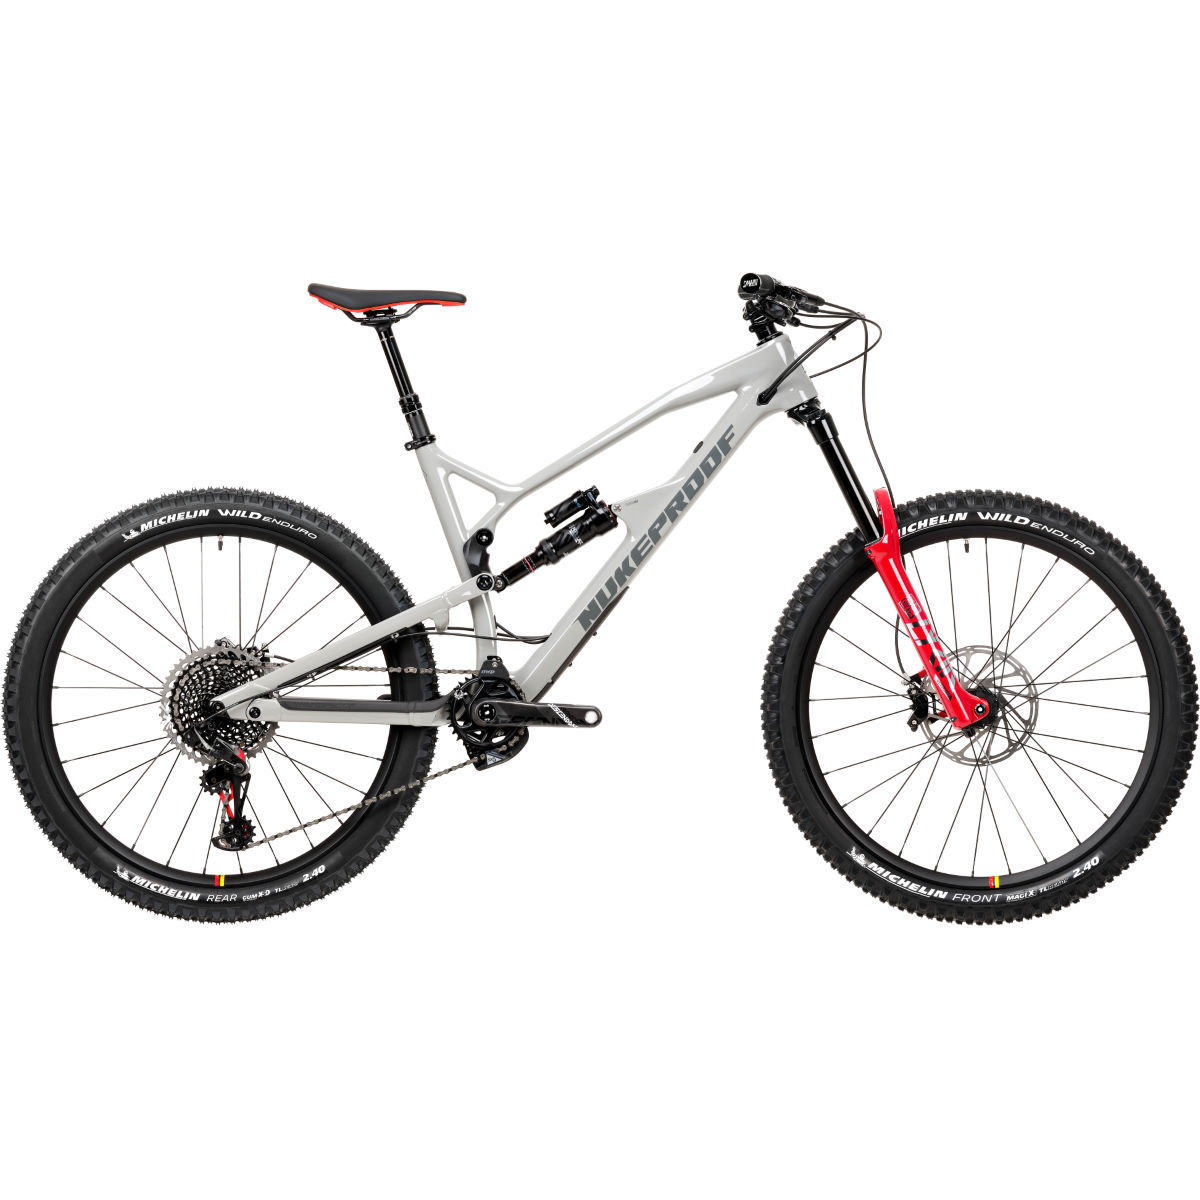 Nukeproof Nukeproof Mega 275 RS Carbon Bike (XO1 Eagle - 2020)   Full Suspension Mountain Bikes